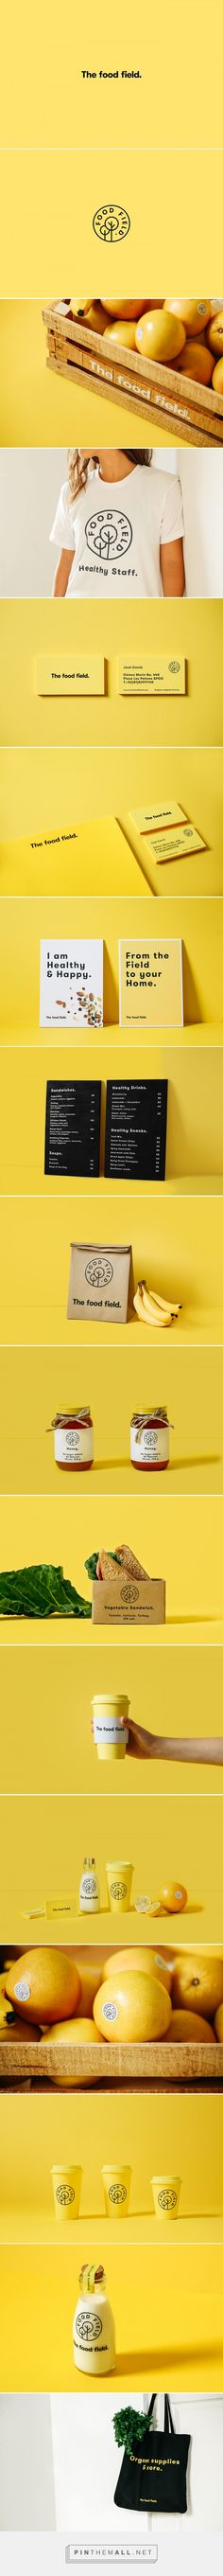 The Food Field branding - Mindsparkle Mag - created via https://pinthemall.net